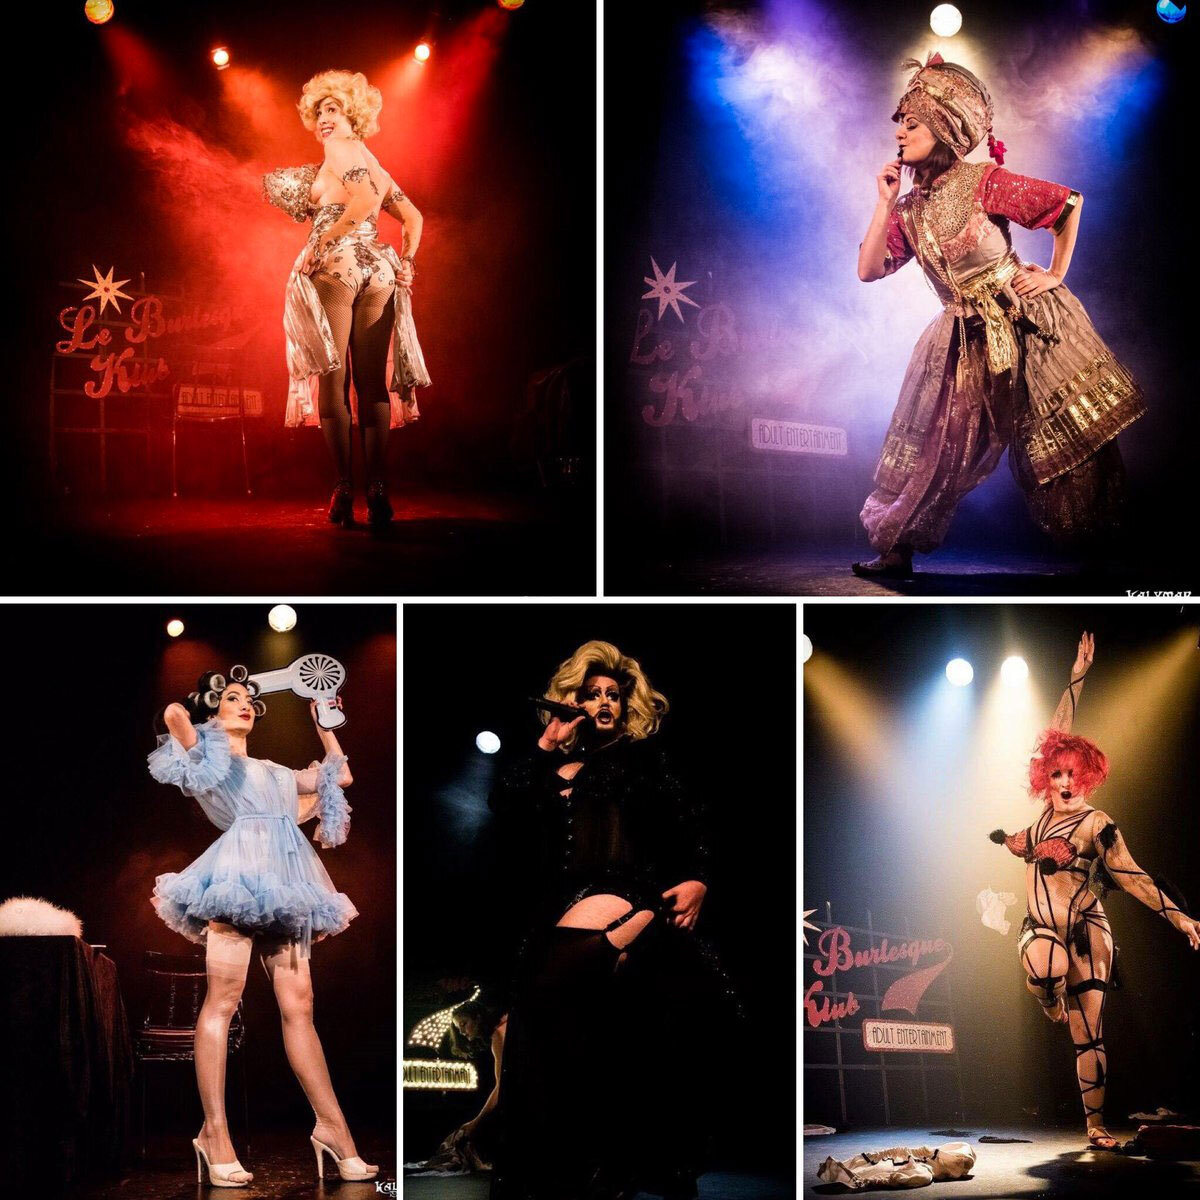 The_Ink_Collective_Inside_Ink_Pret_A_Partir_What_To_Do_Paris_At_Night_Le Cabaret Burlesque - La Nouvelle Seine à Paris_3.jpg